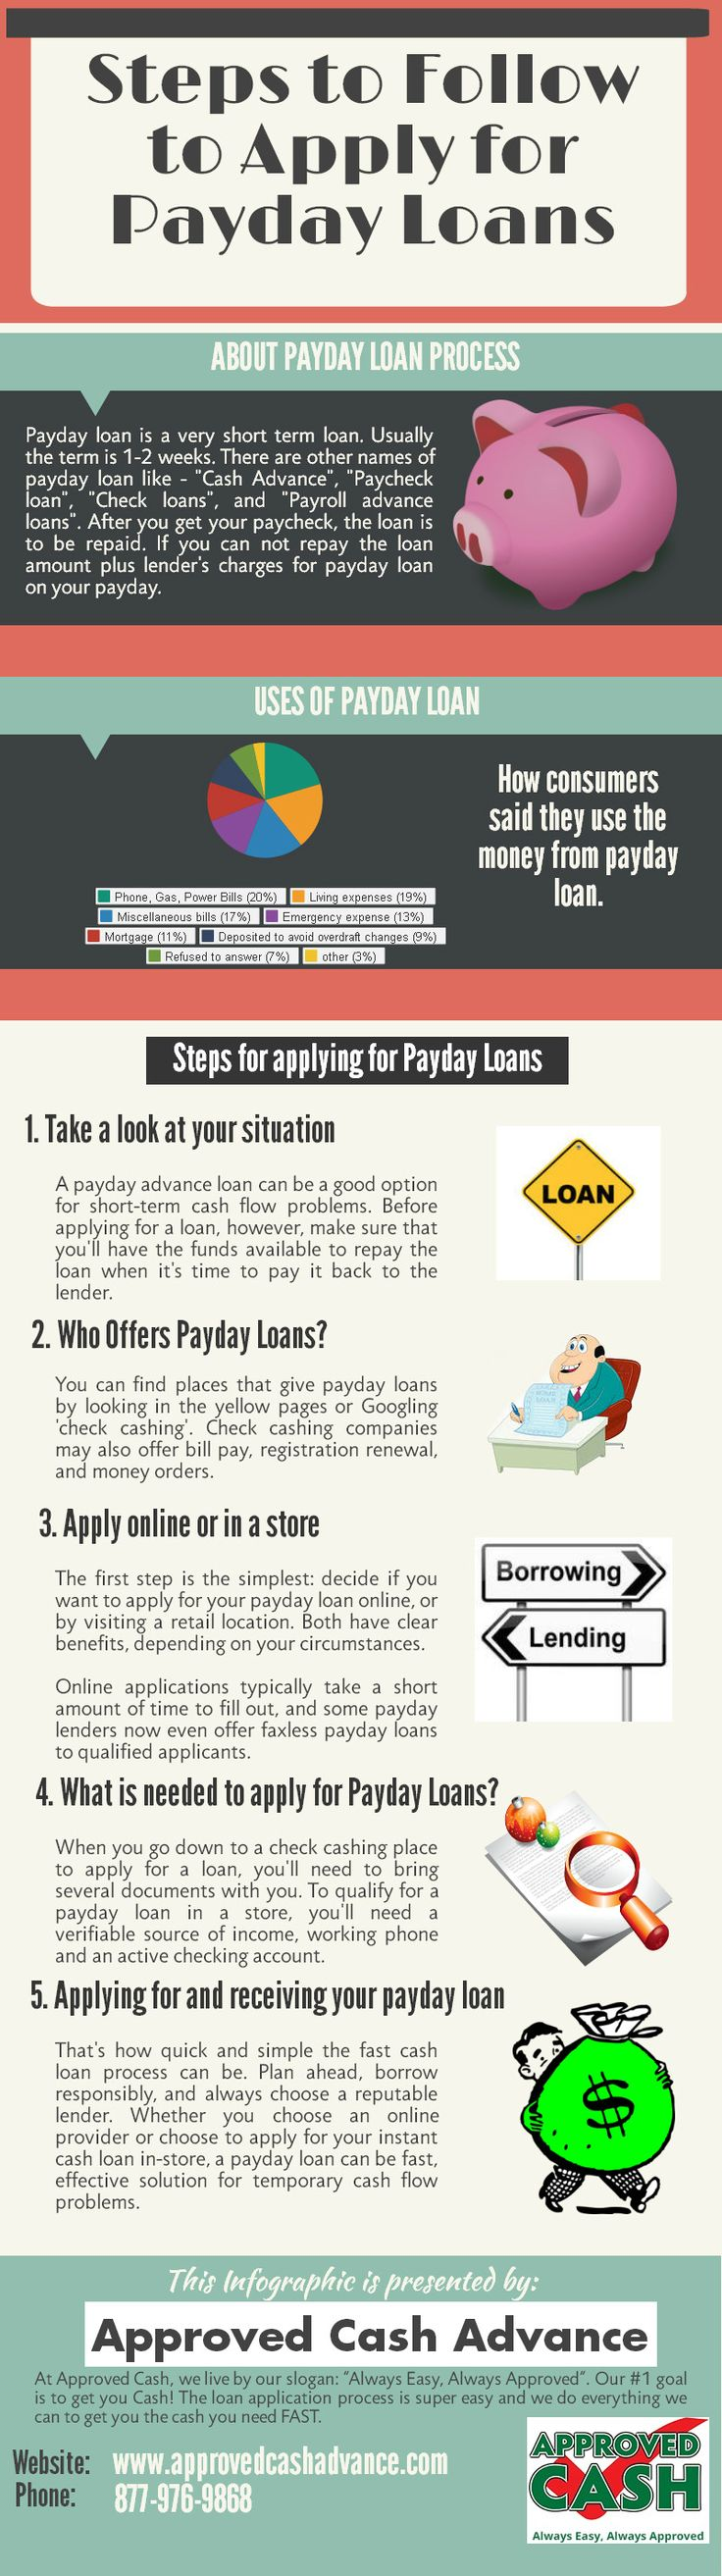 Get quick and fast cash at Approved Cash Advance. Payday loans are cash advances provided to a borrower to meet financial needs. As a borrower, you will be required to write a check from your personal checking account as collateral to cover the full payment of this loan.